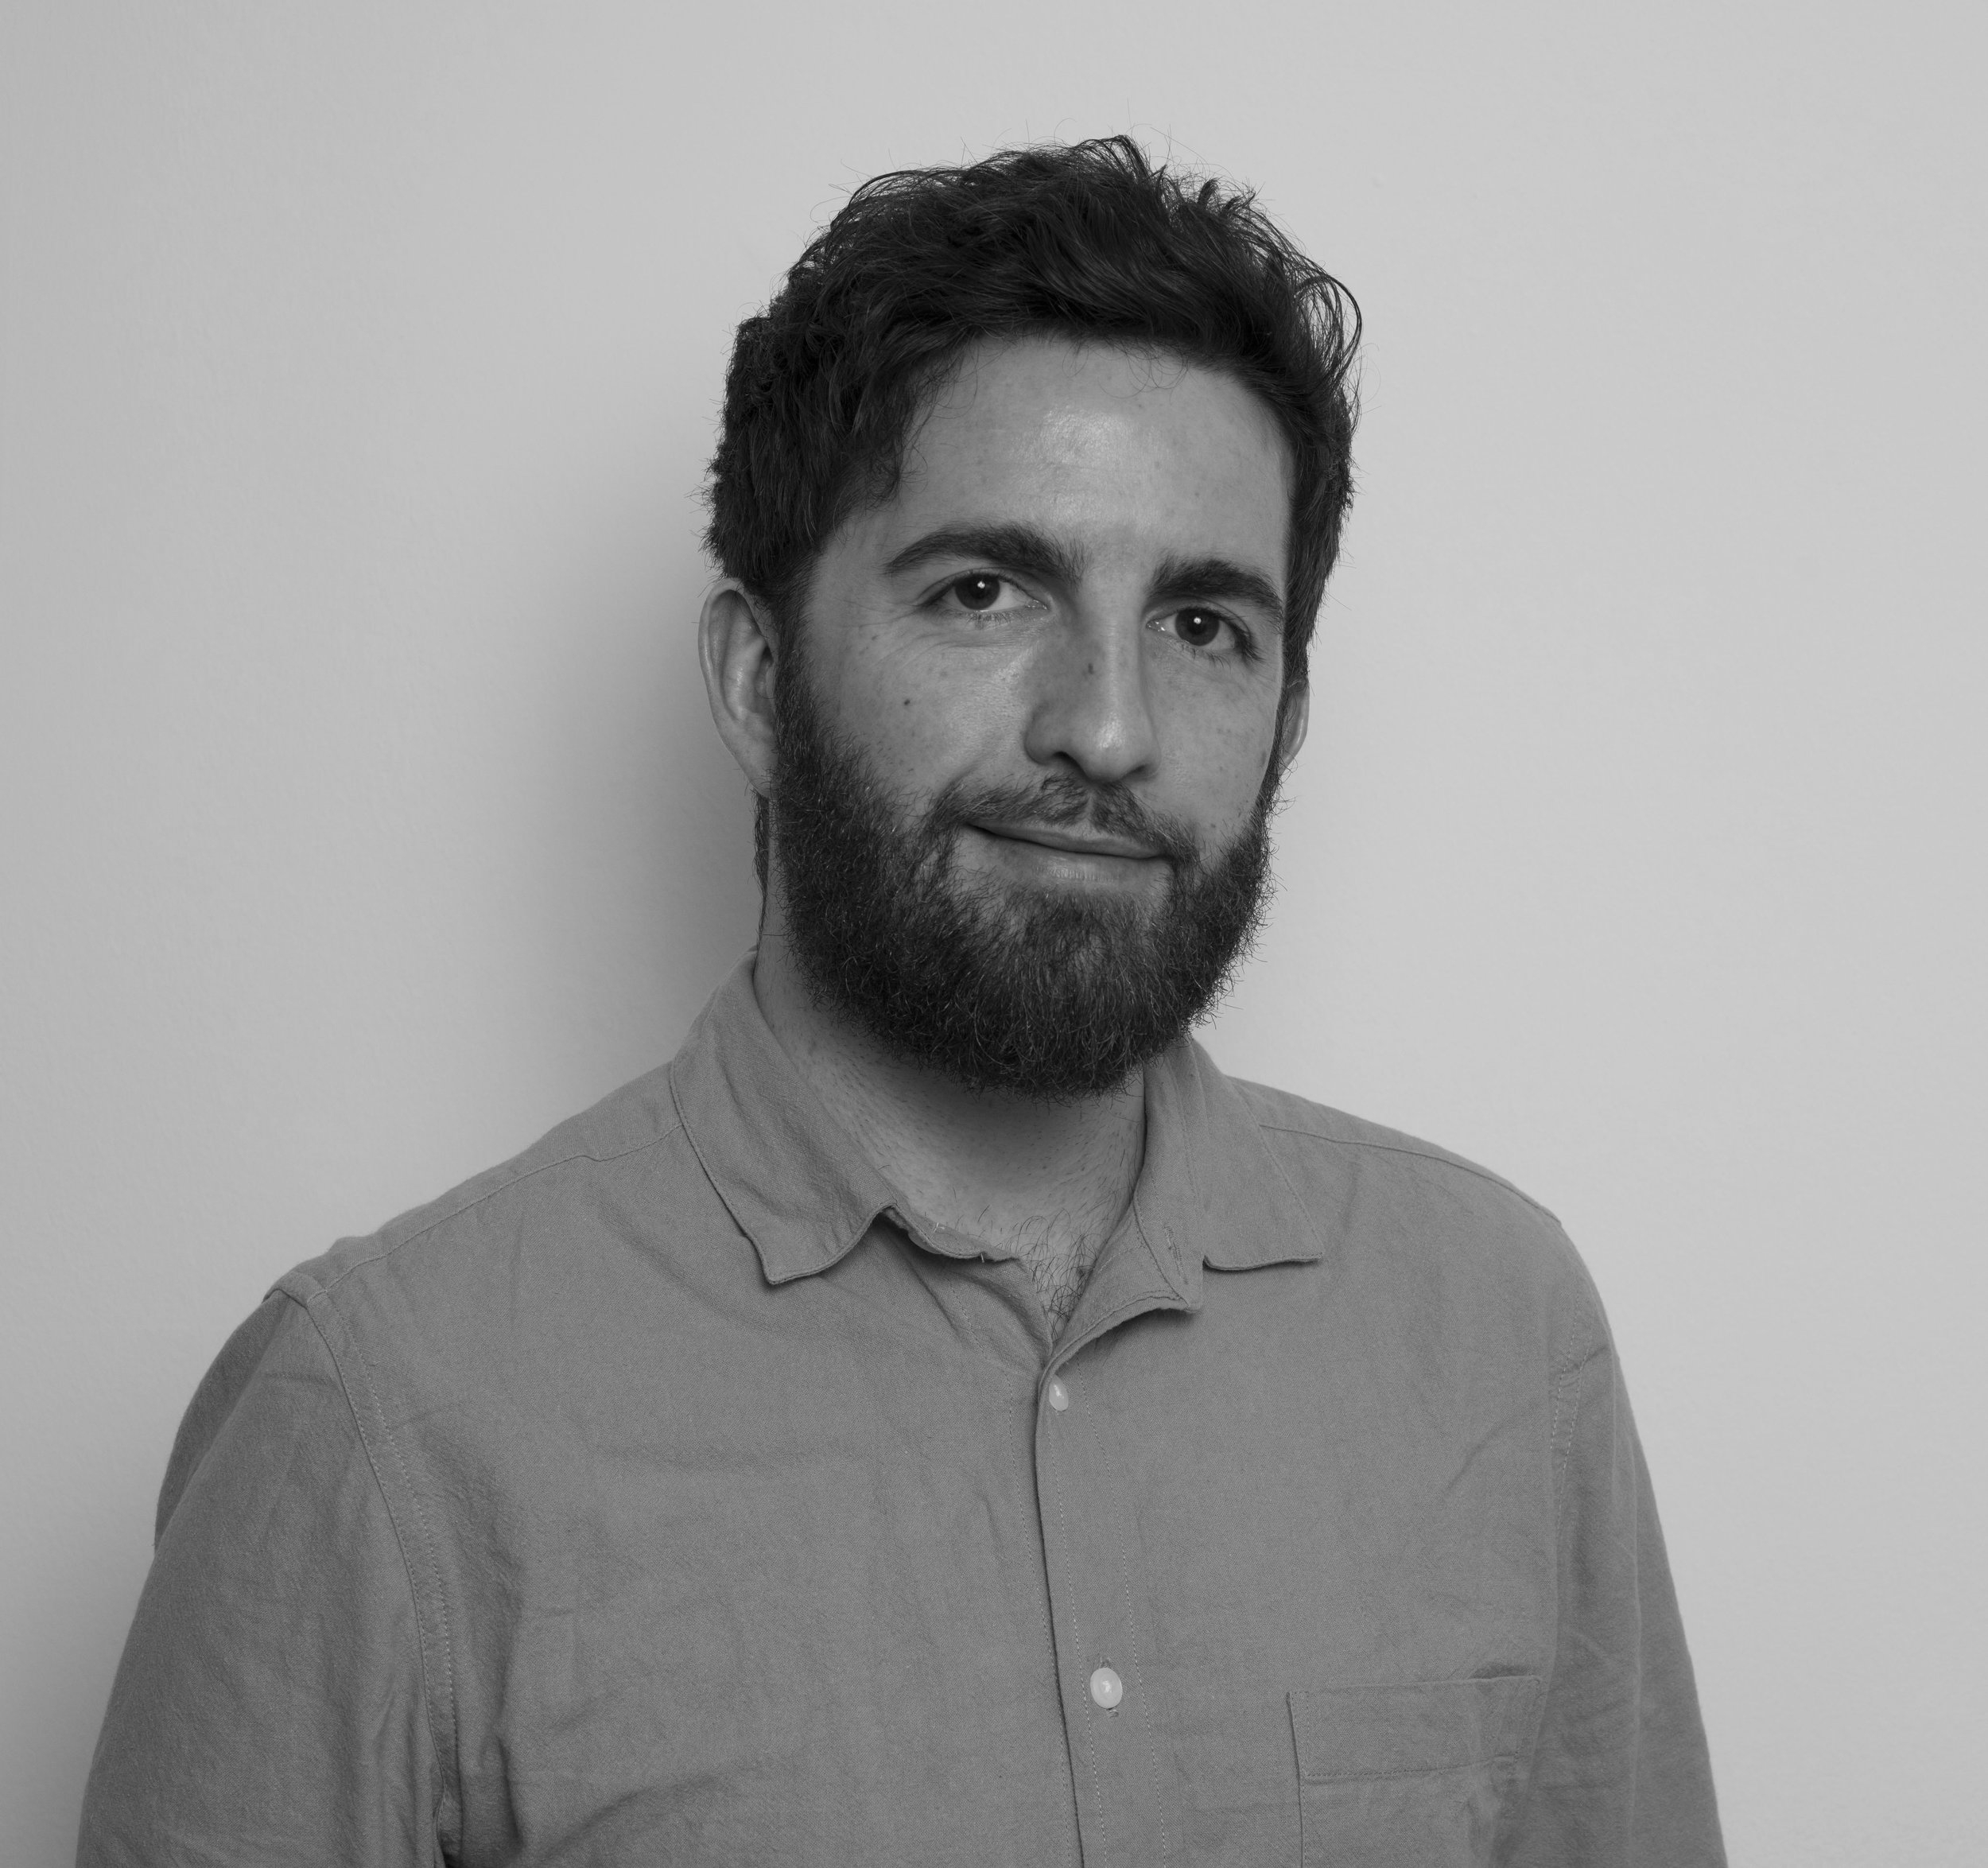 <b>Andy O'Keeffe</b><br>Account Manager, Business